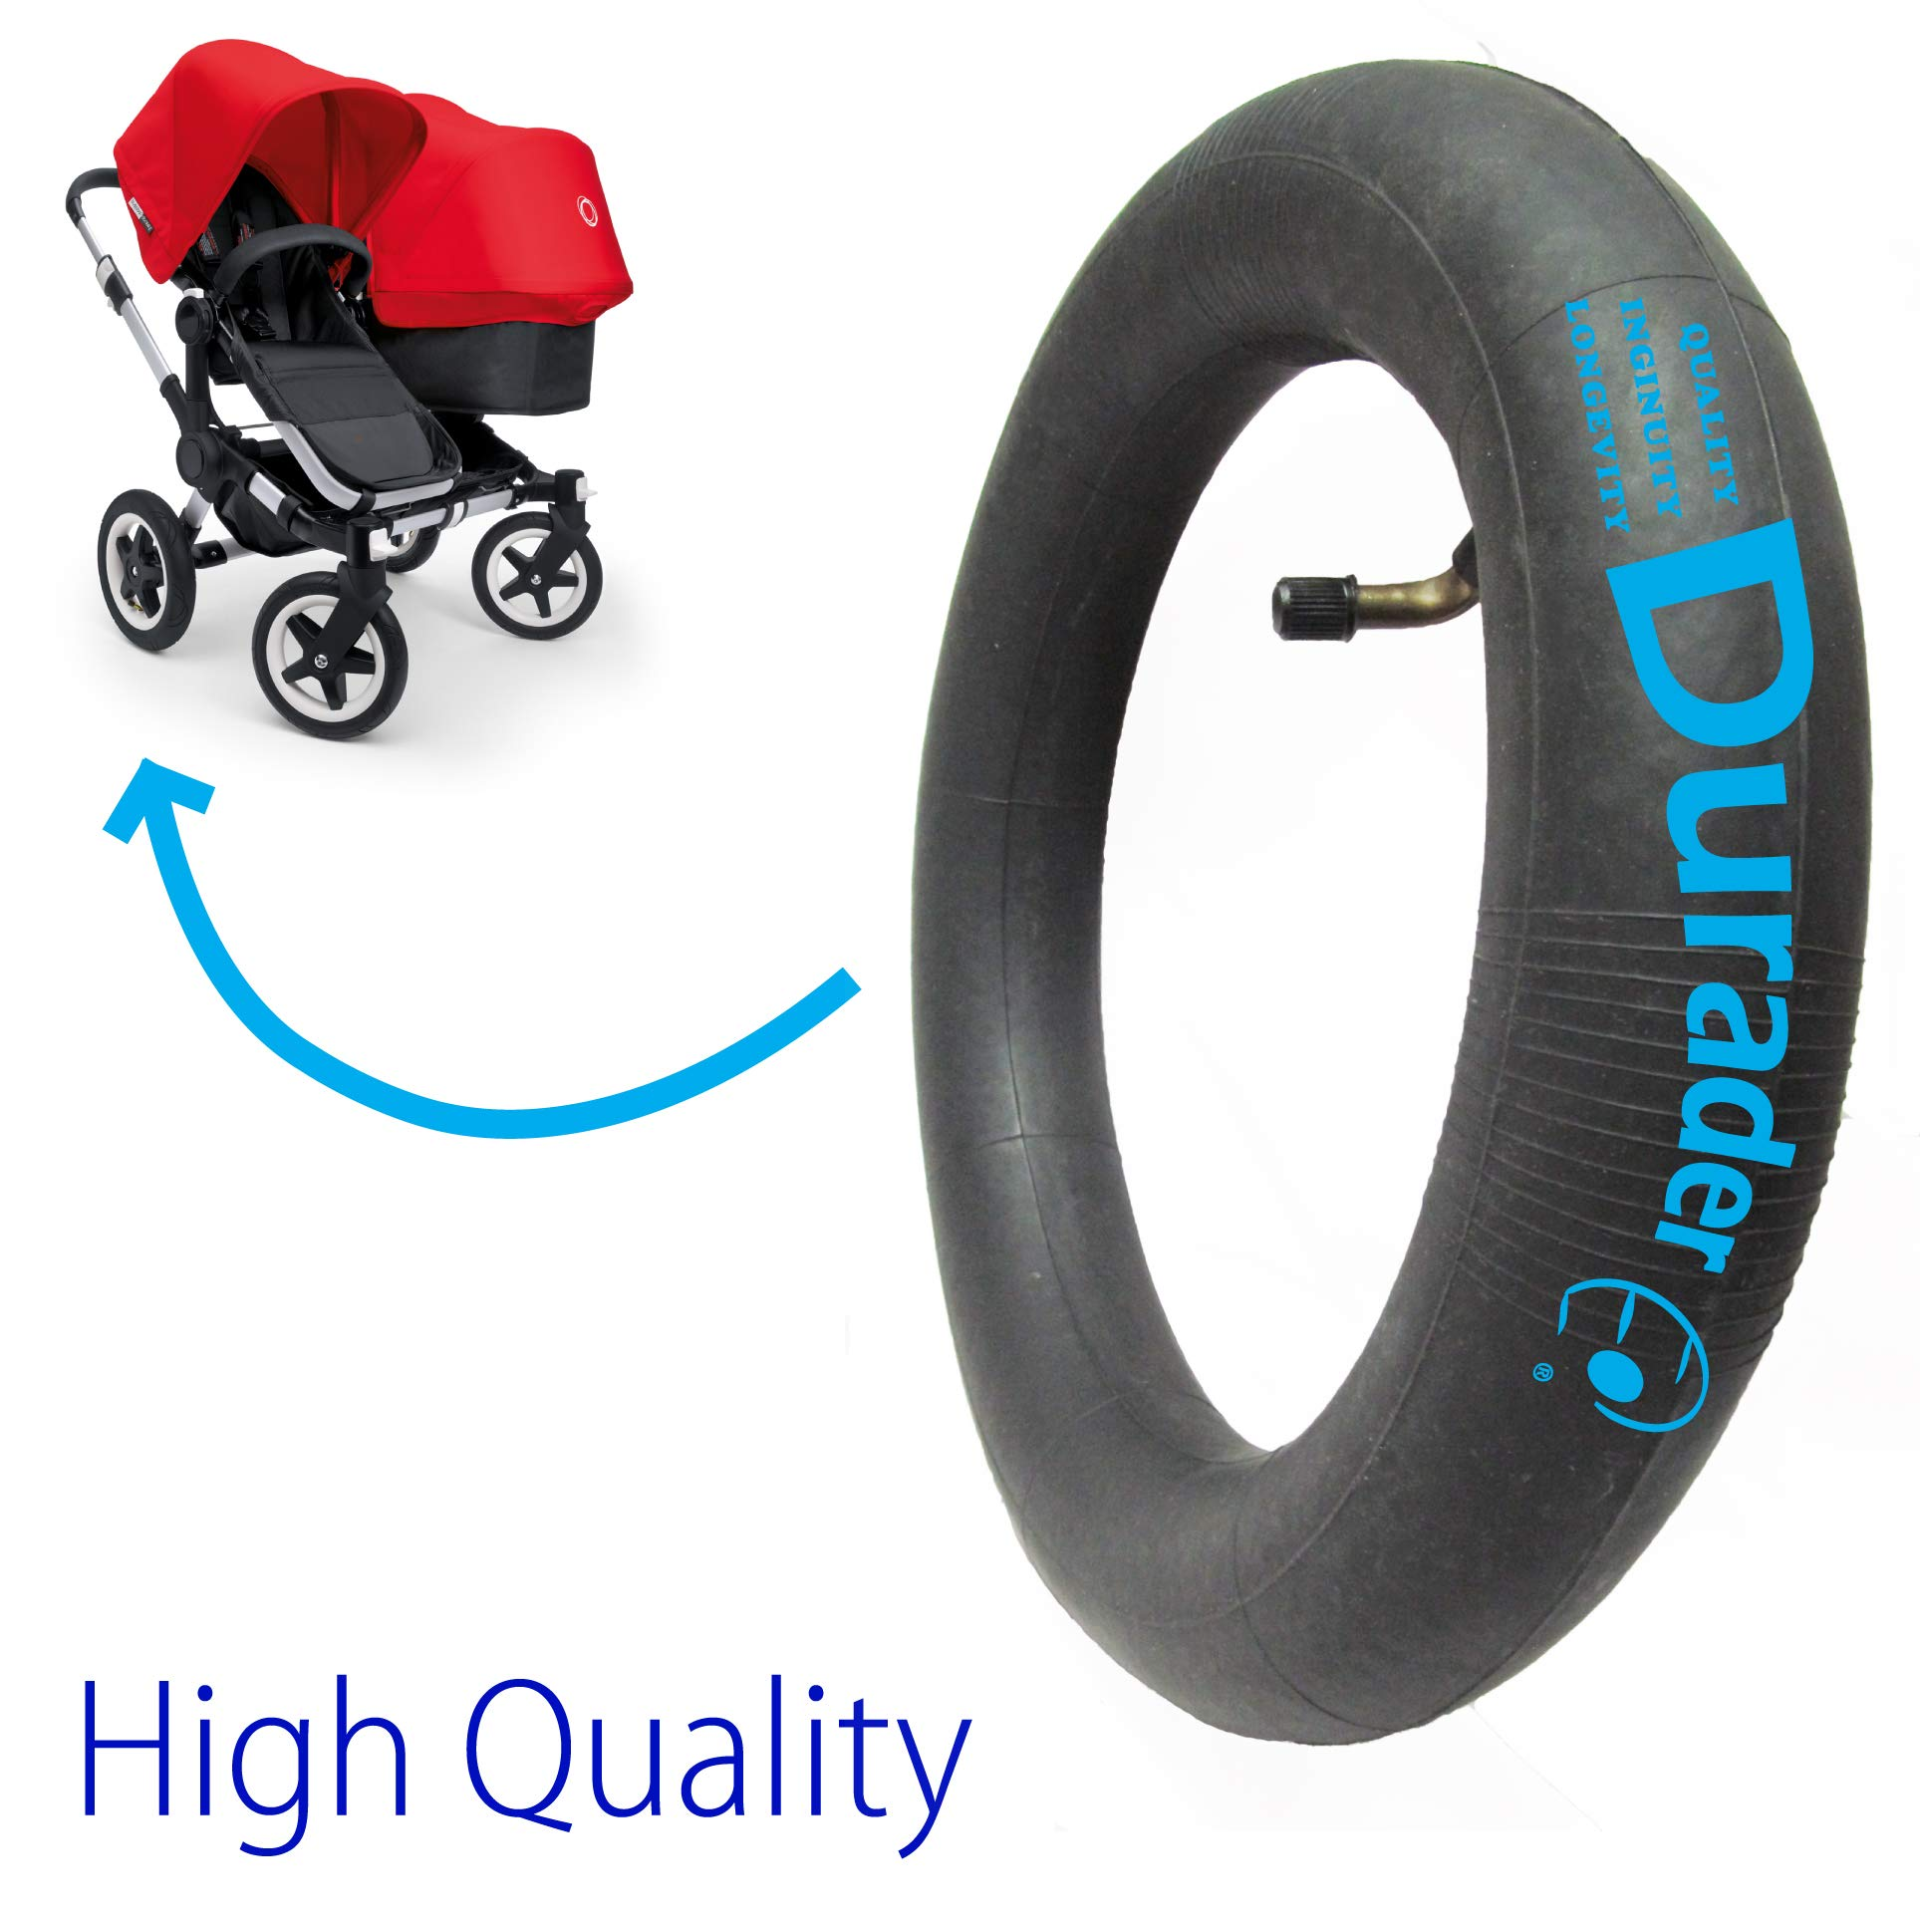 rear tire tube for Bugaboo Donkey Duo stroller by Lineament (Image #1)